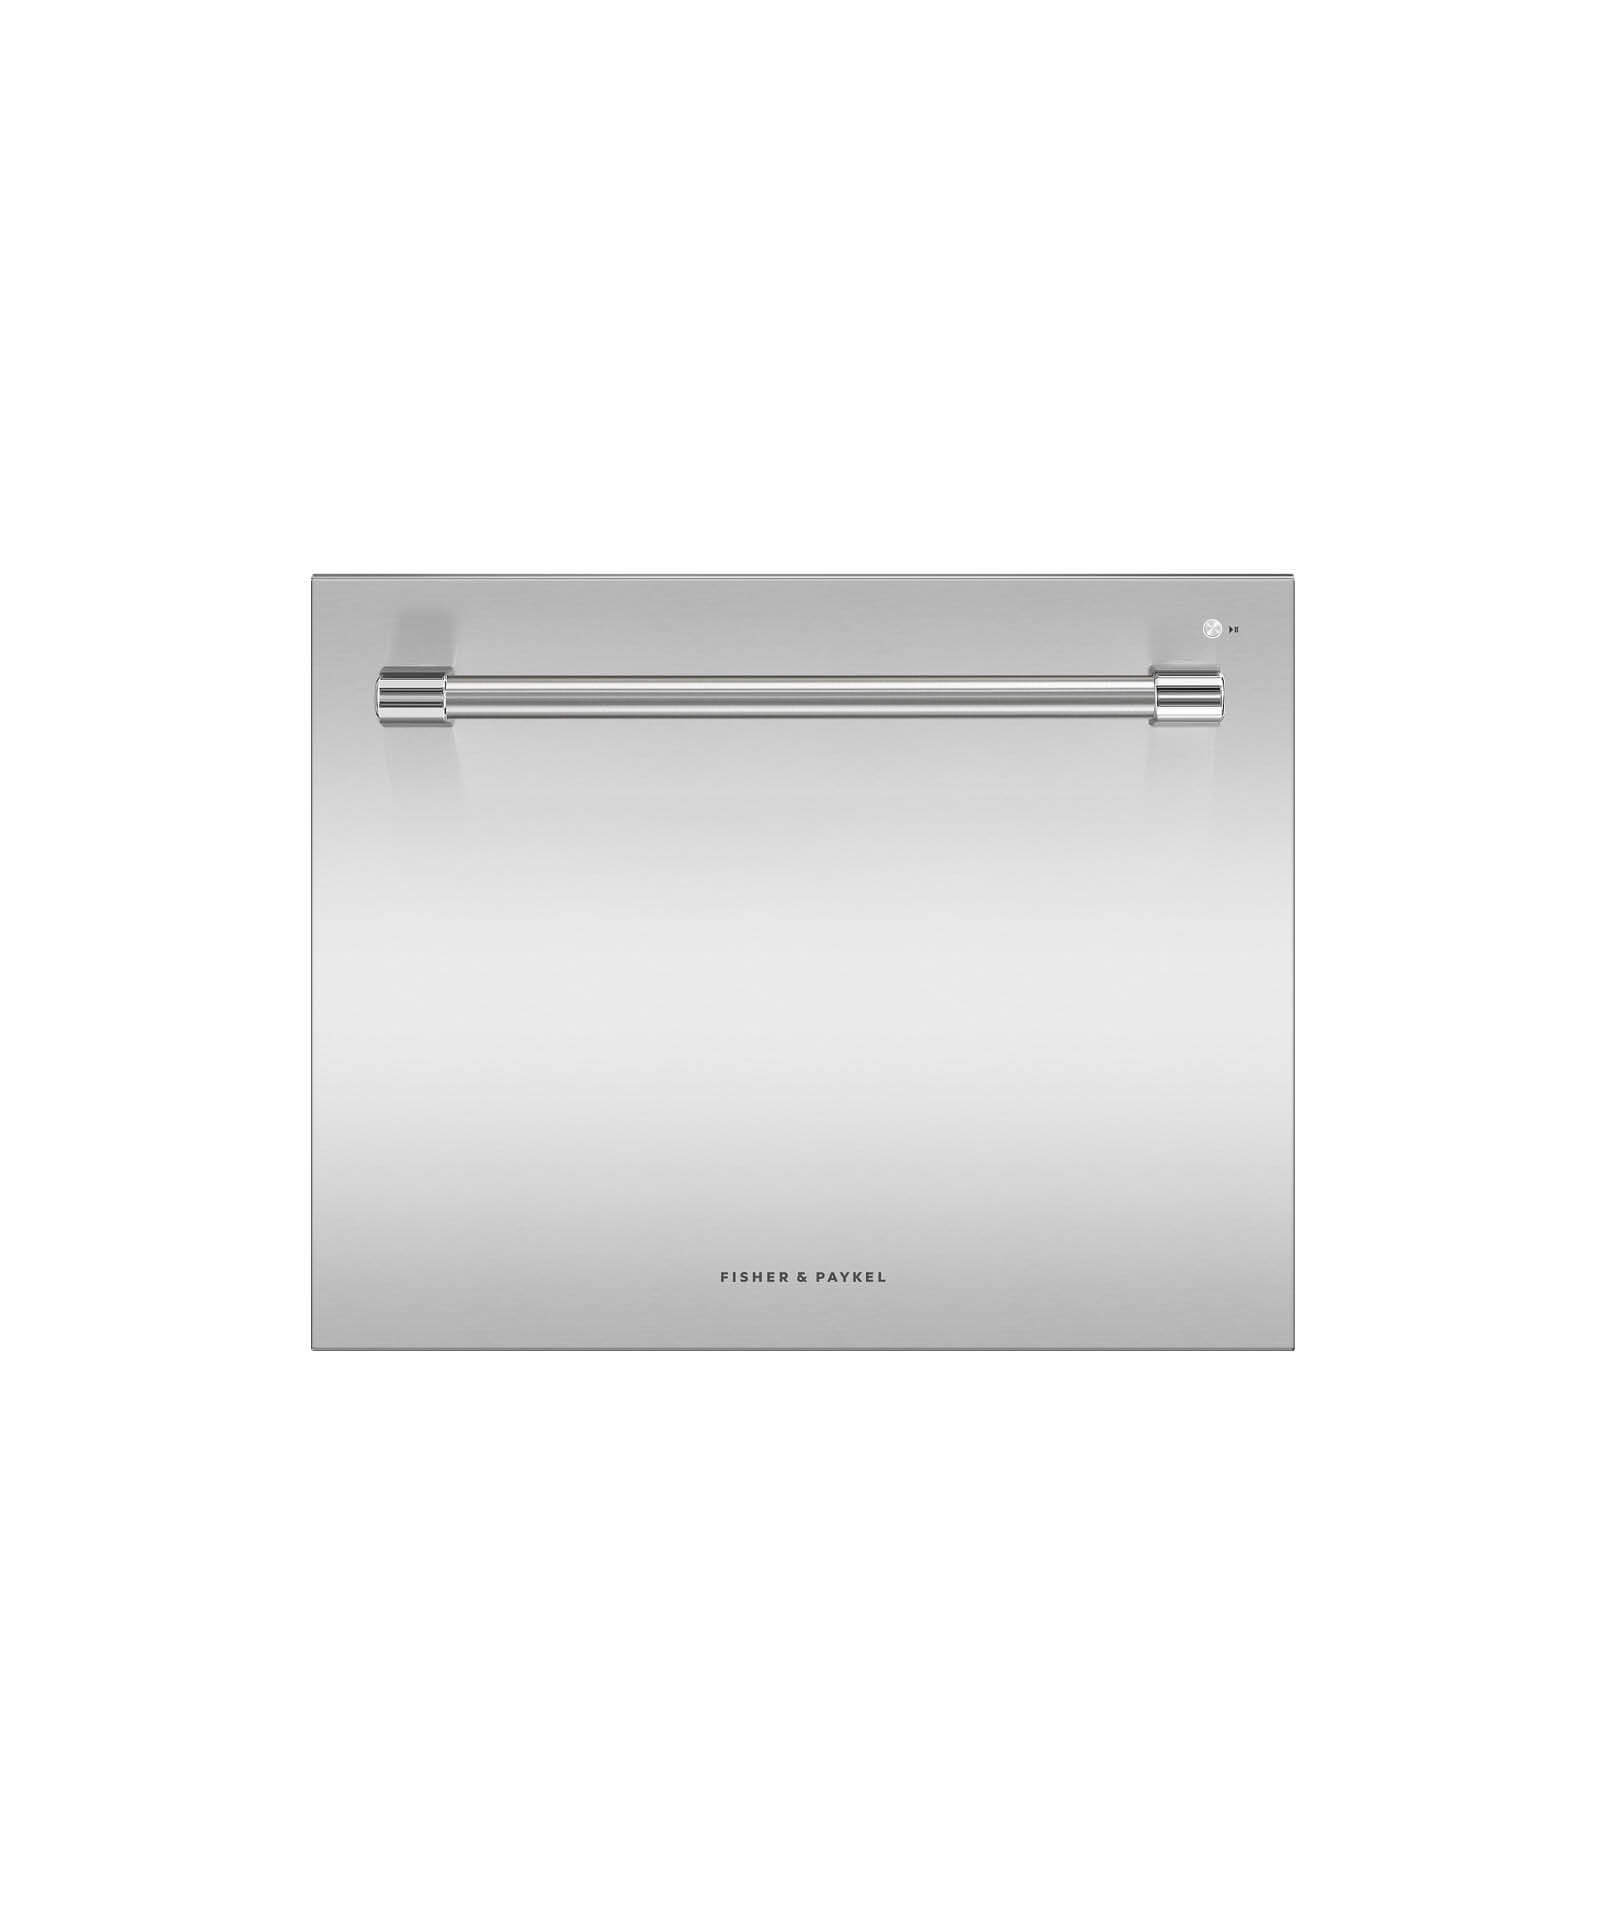 "Fisher and Paykel 24"" Single DishDrawer™ Dishwasher, 7 Place Settings, Sanitize (Tall)"